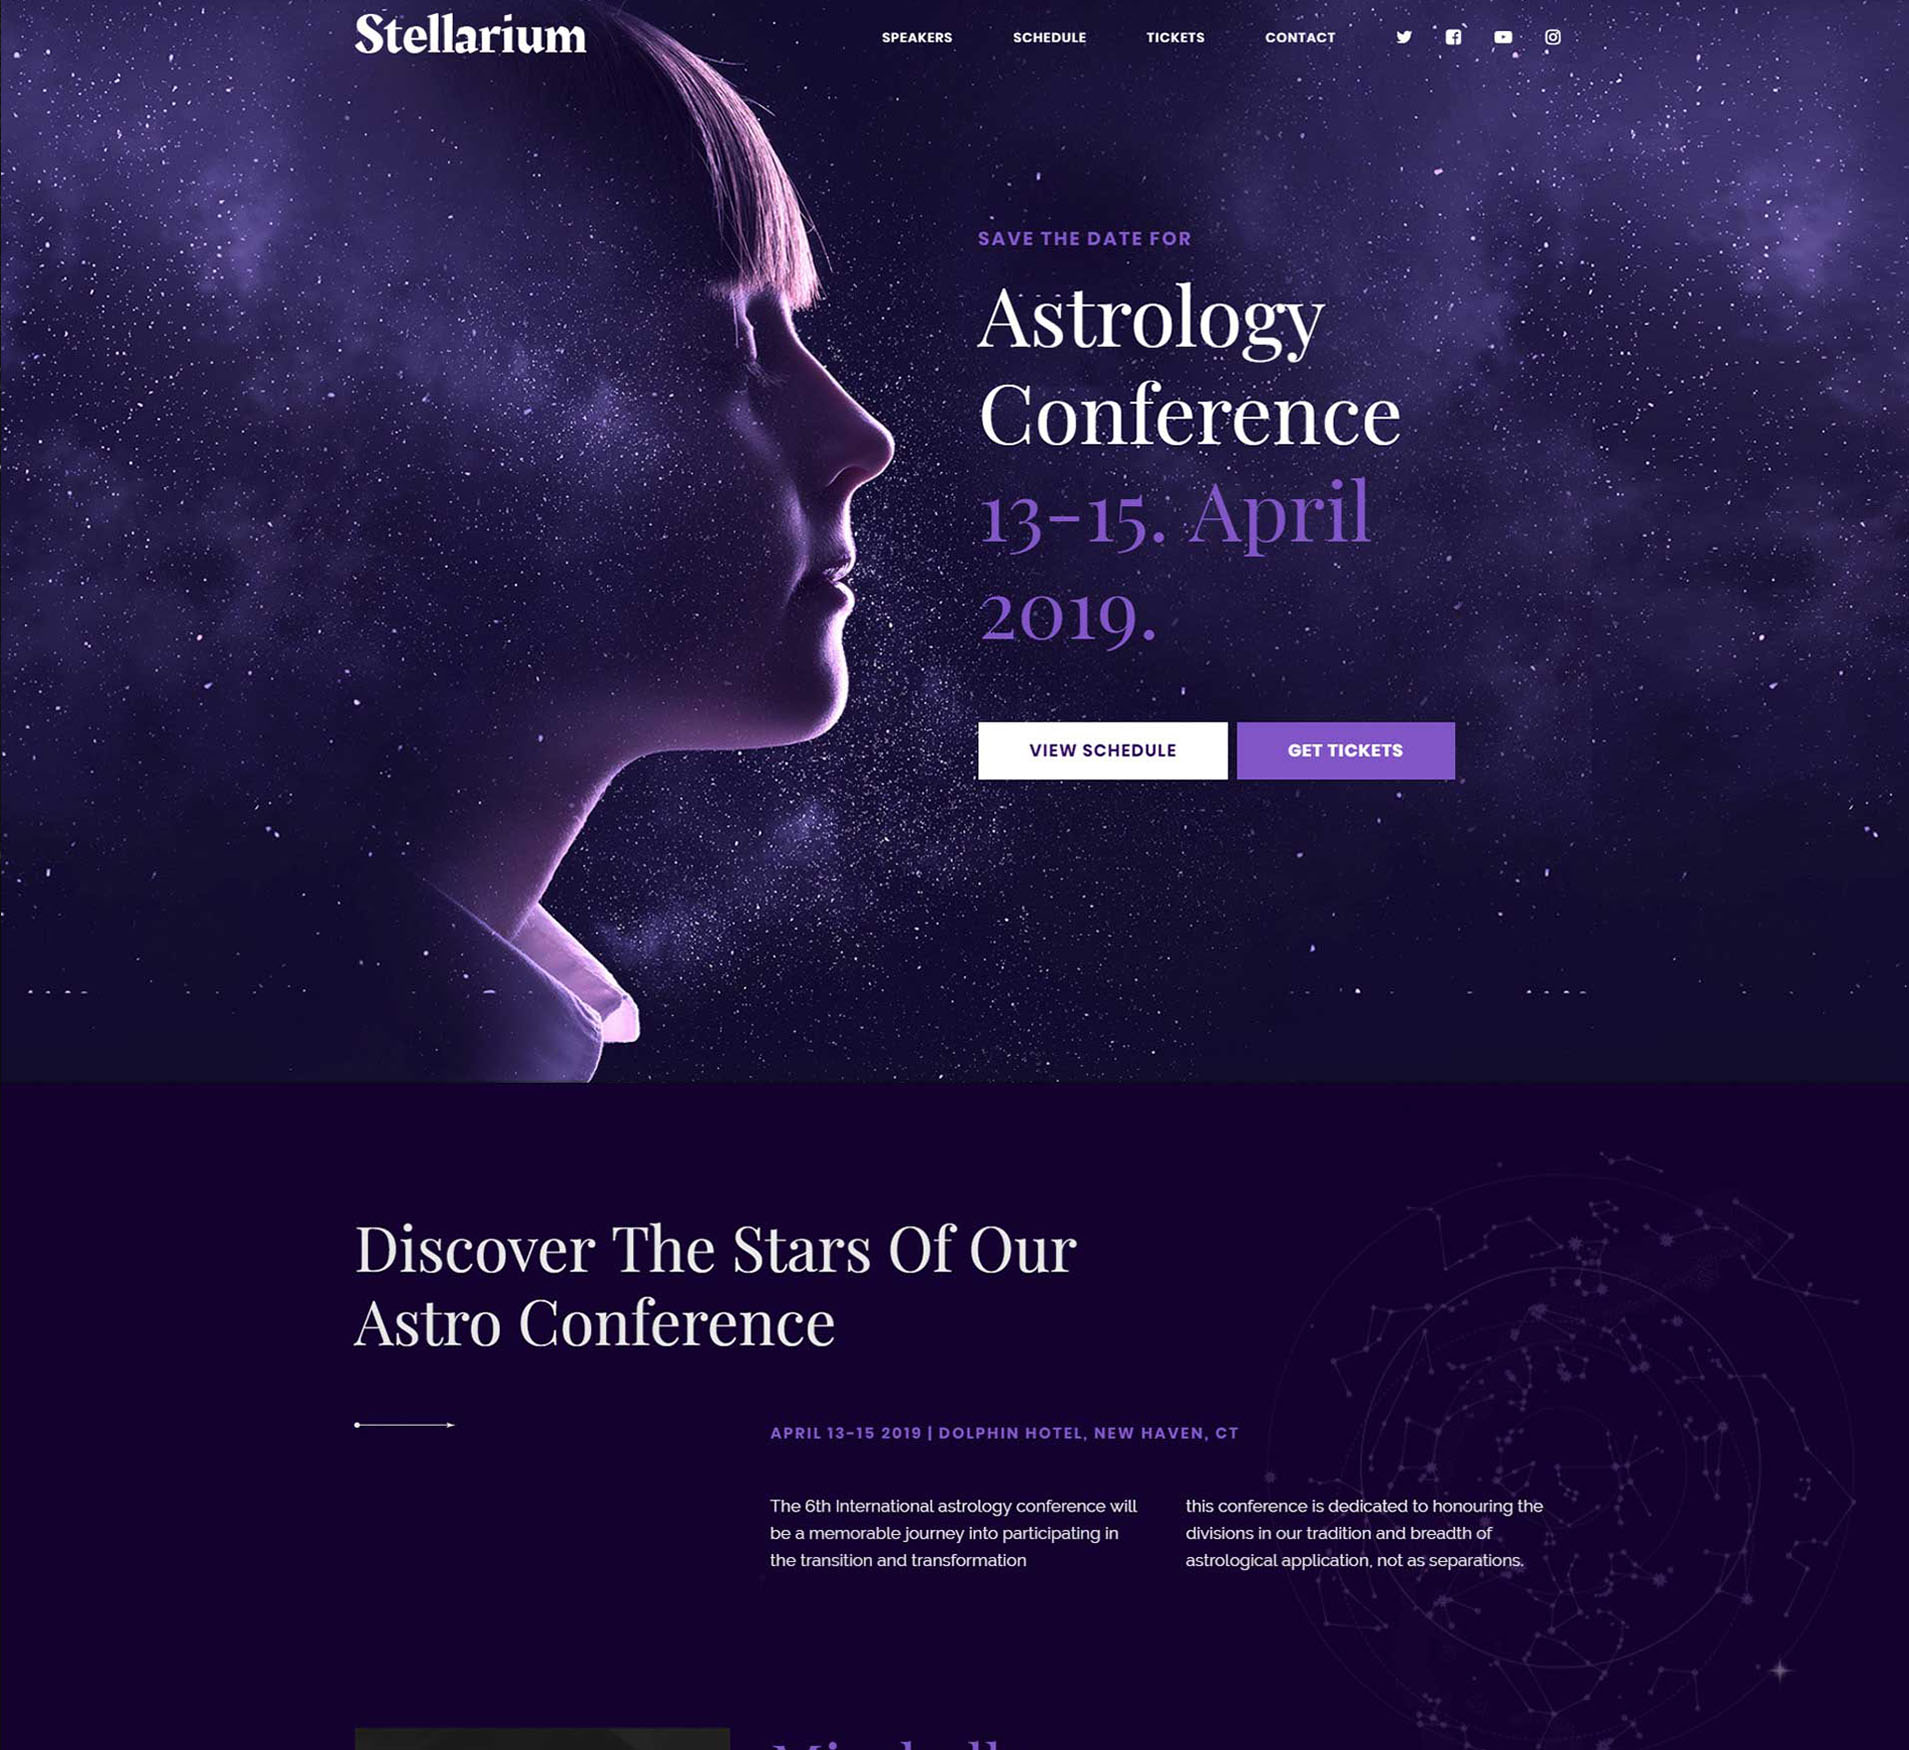 https://stellarium.bold-themes.com/wp-content/uploads/2018/07/highlight_conference_demo.jpg